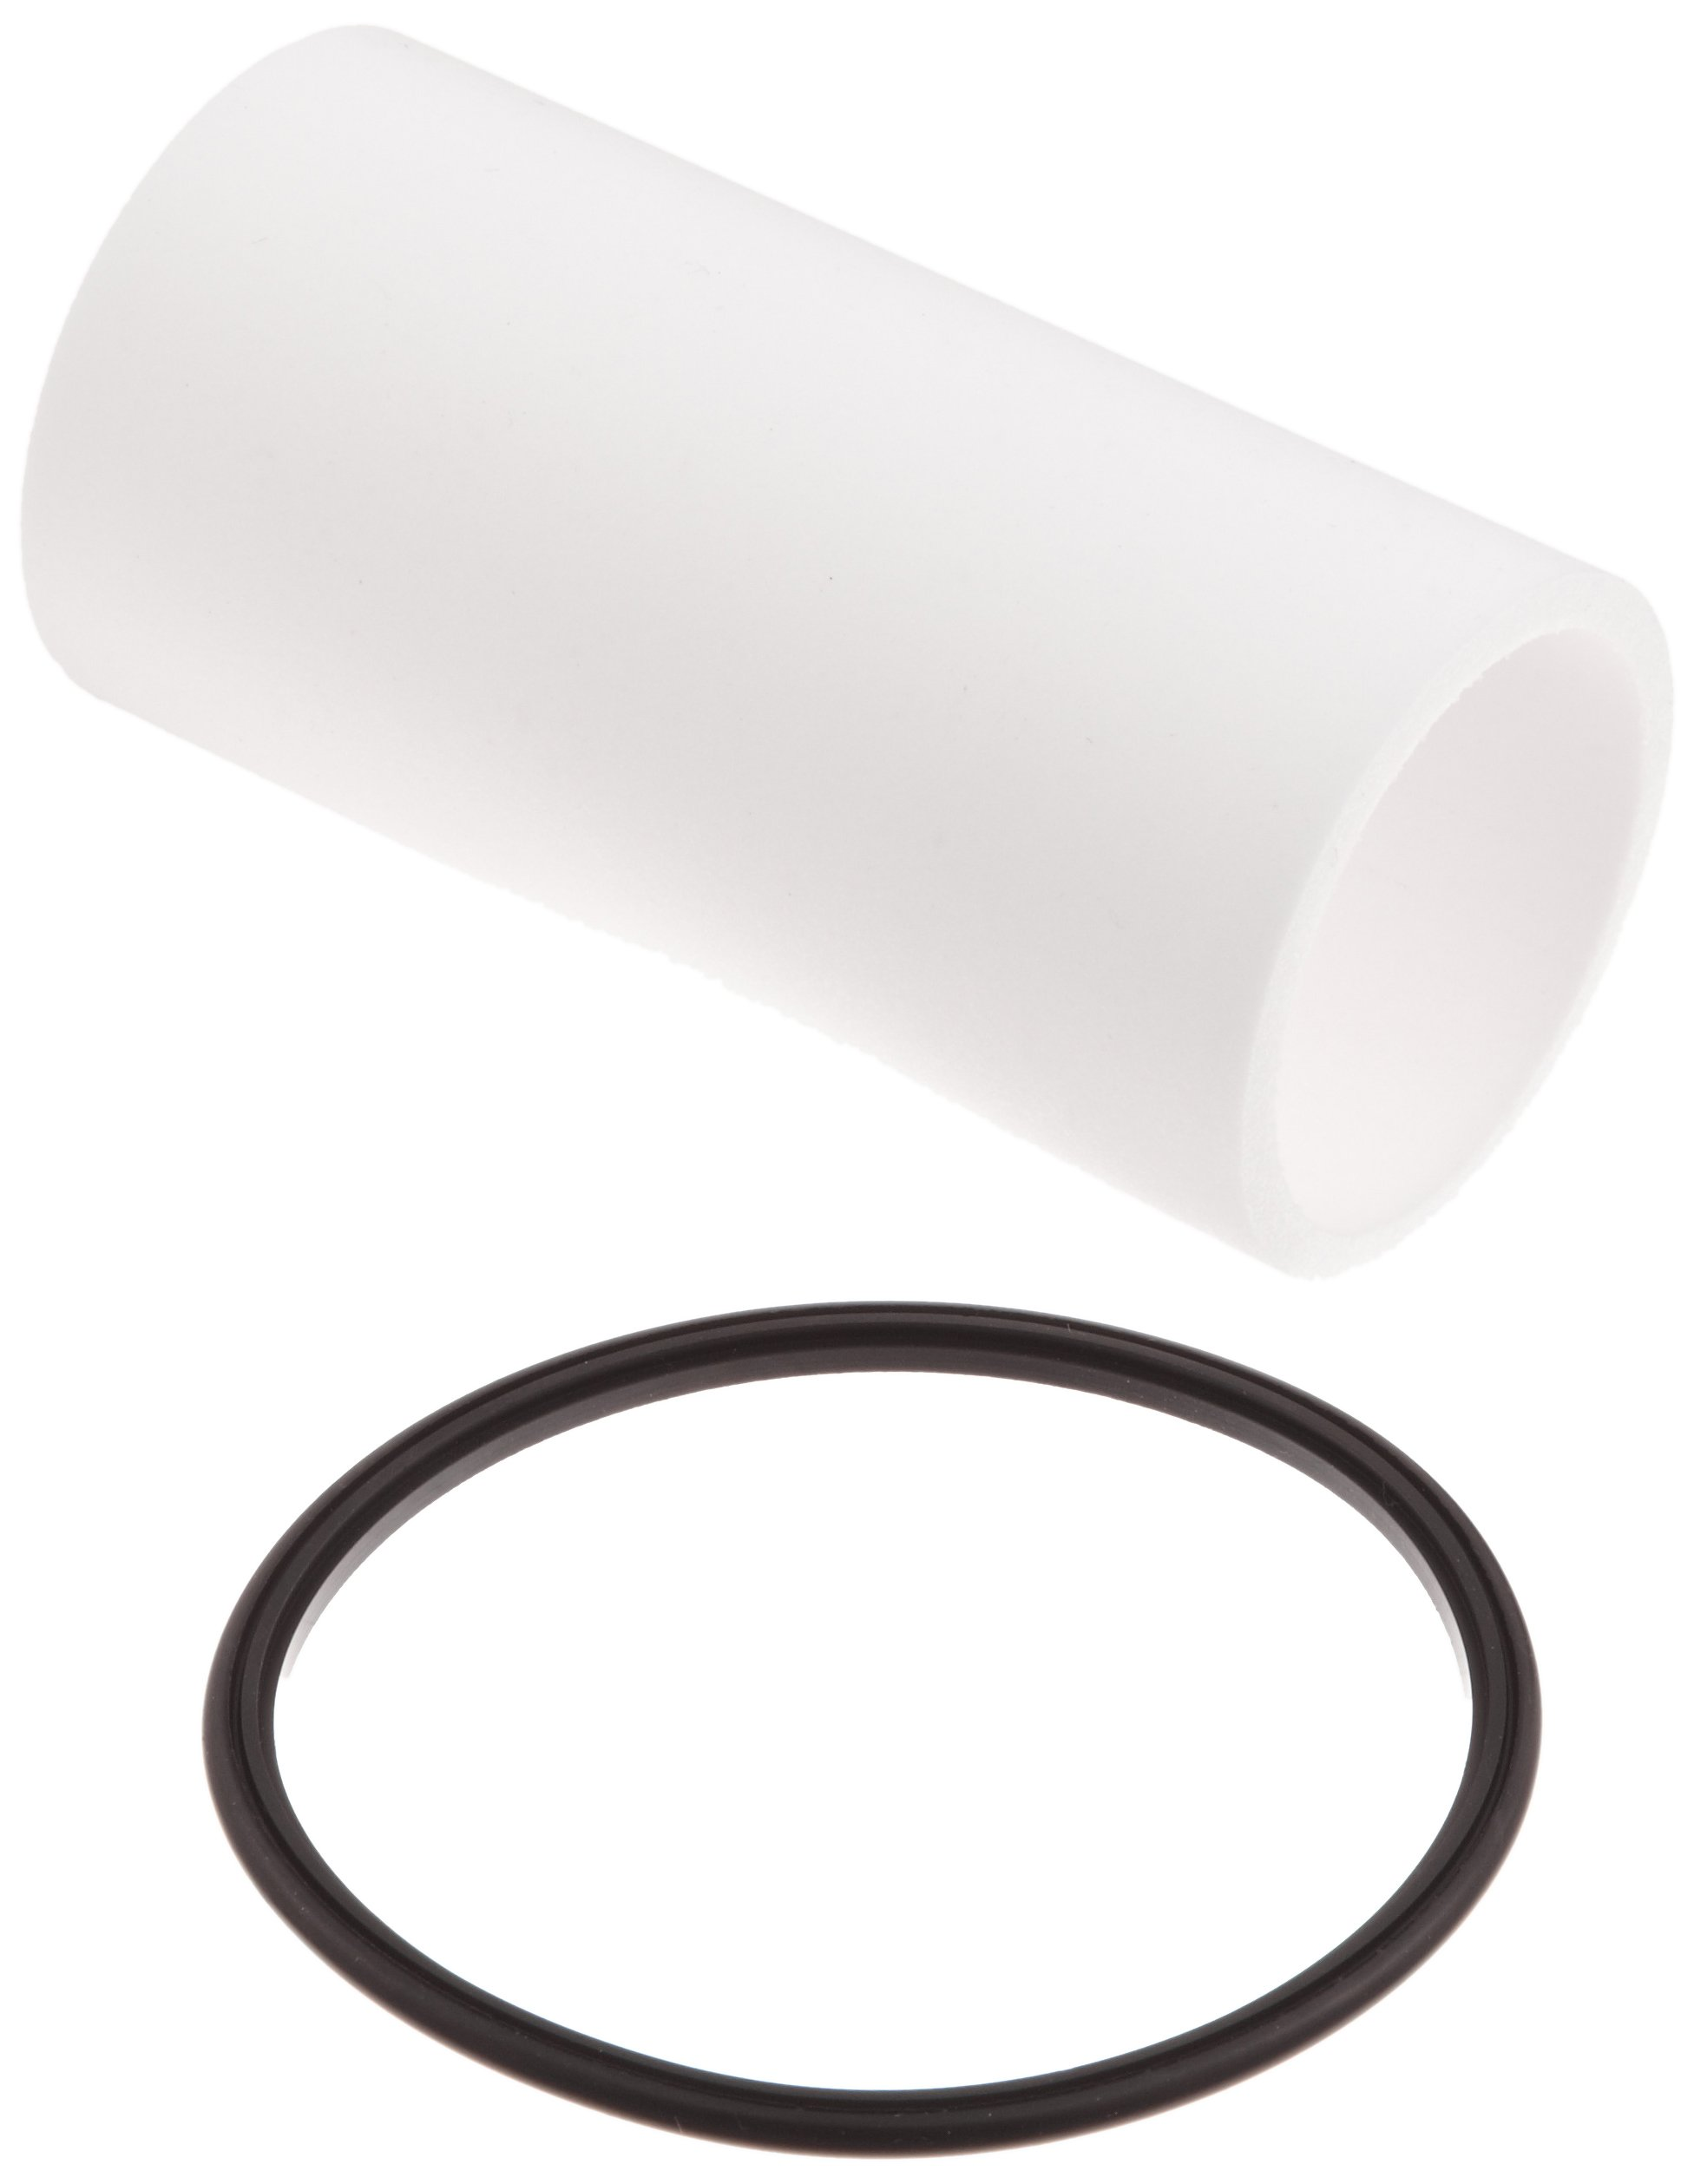 Parker P3NKA00ESE Plastic Filter Element for P3NF and P3NE Series Filter/Regulator, 5 Micron by Parker